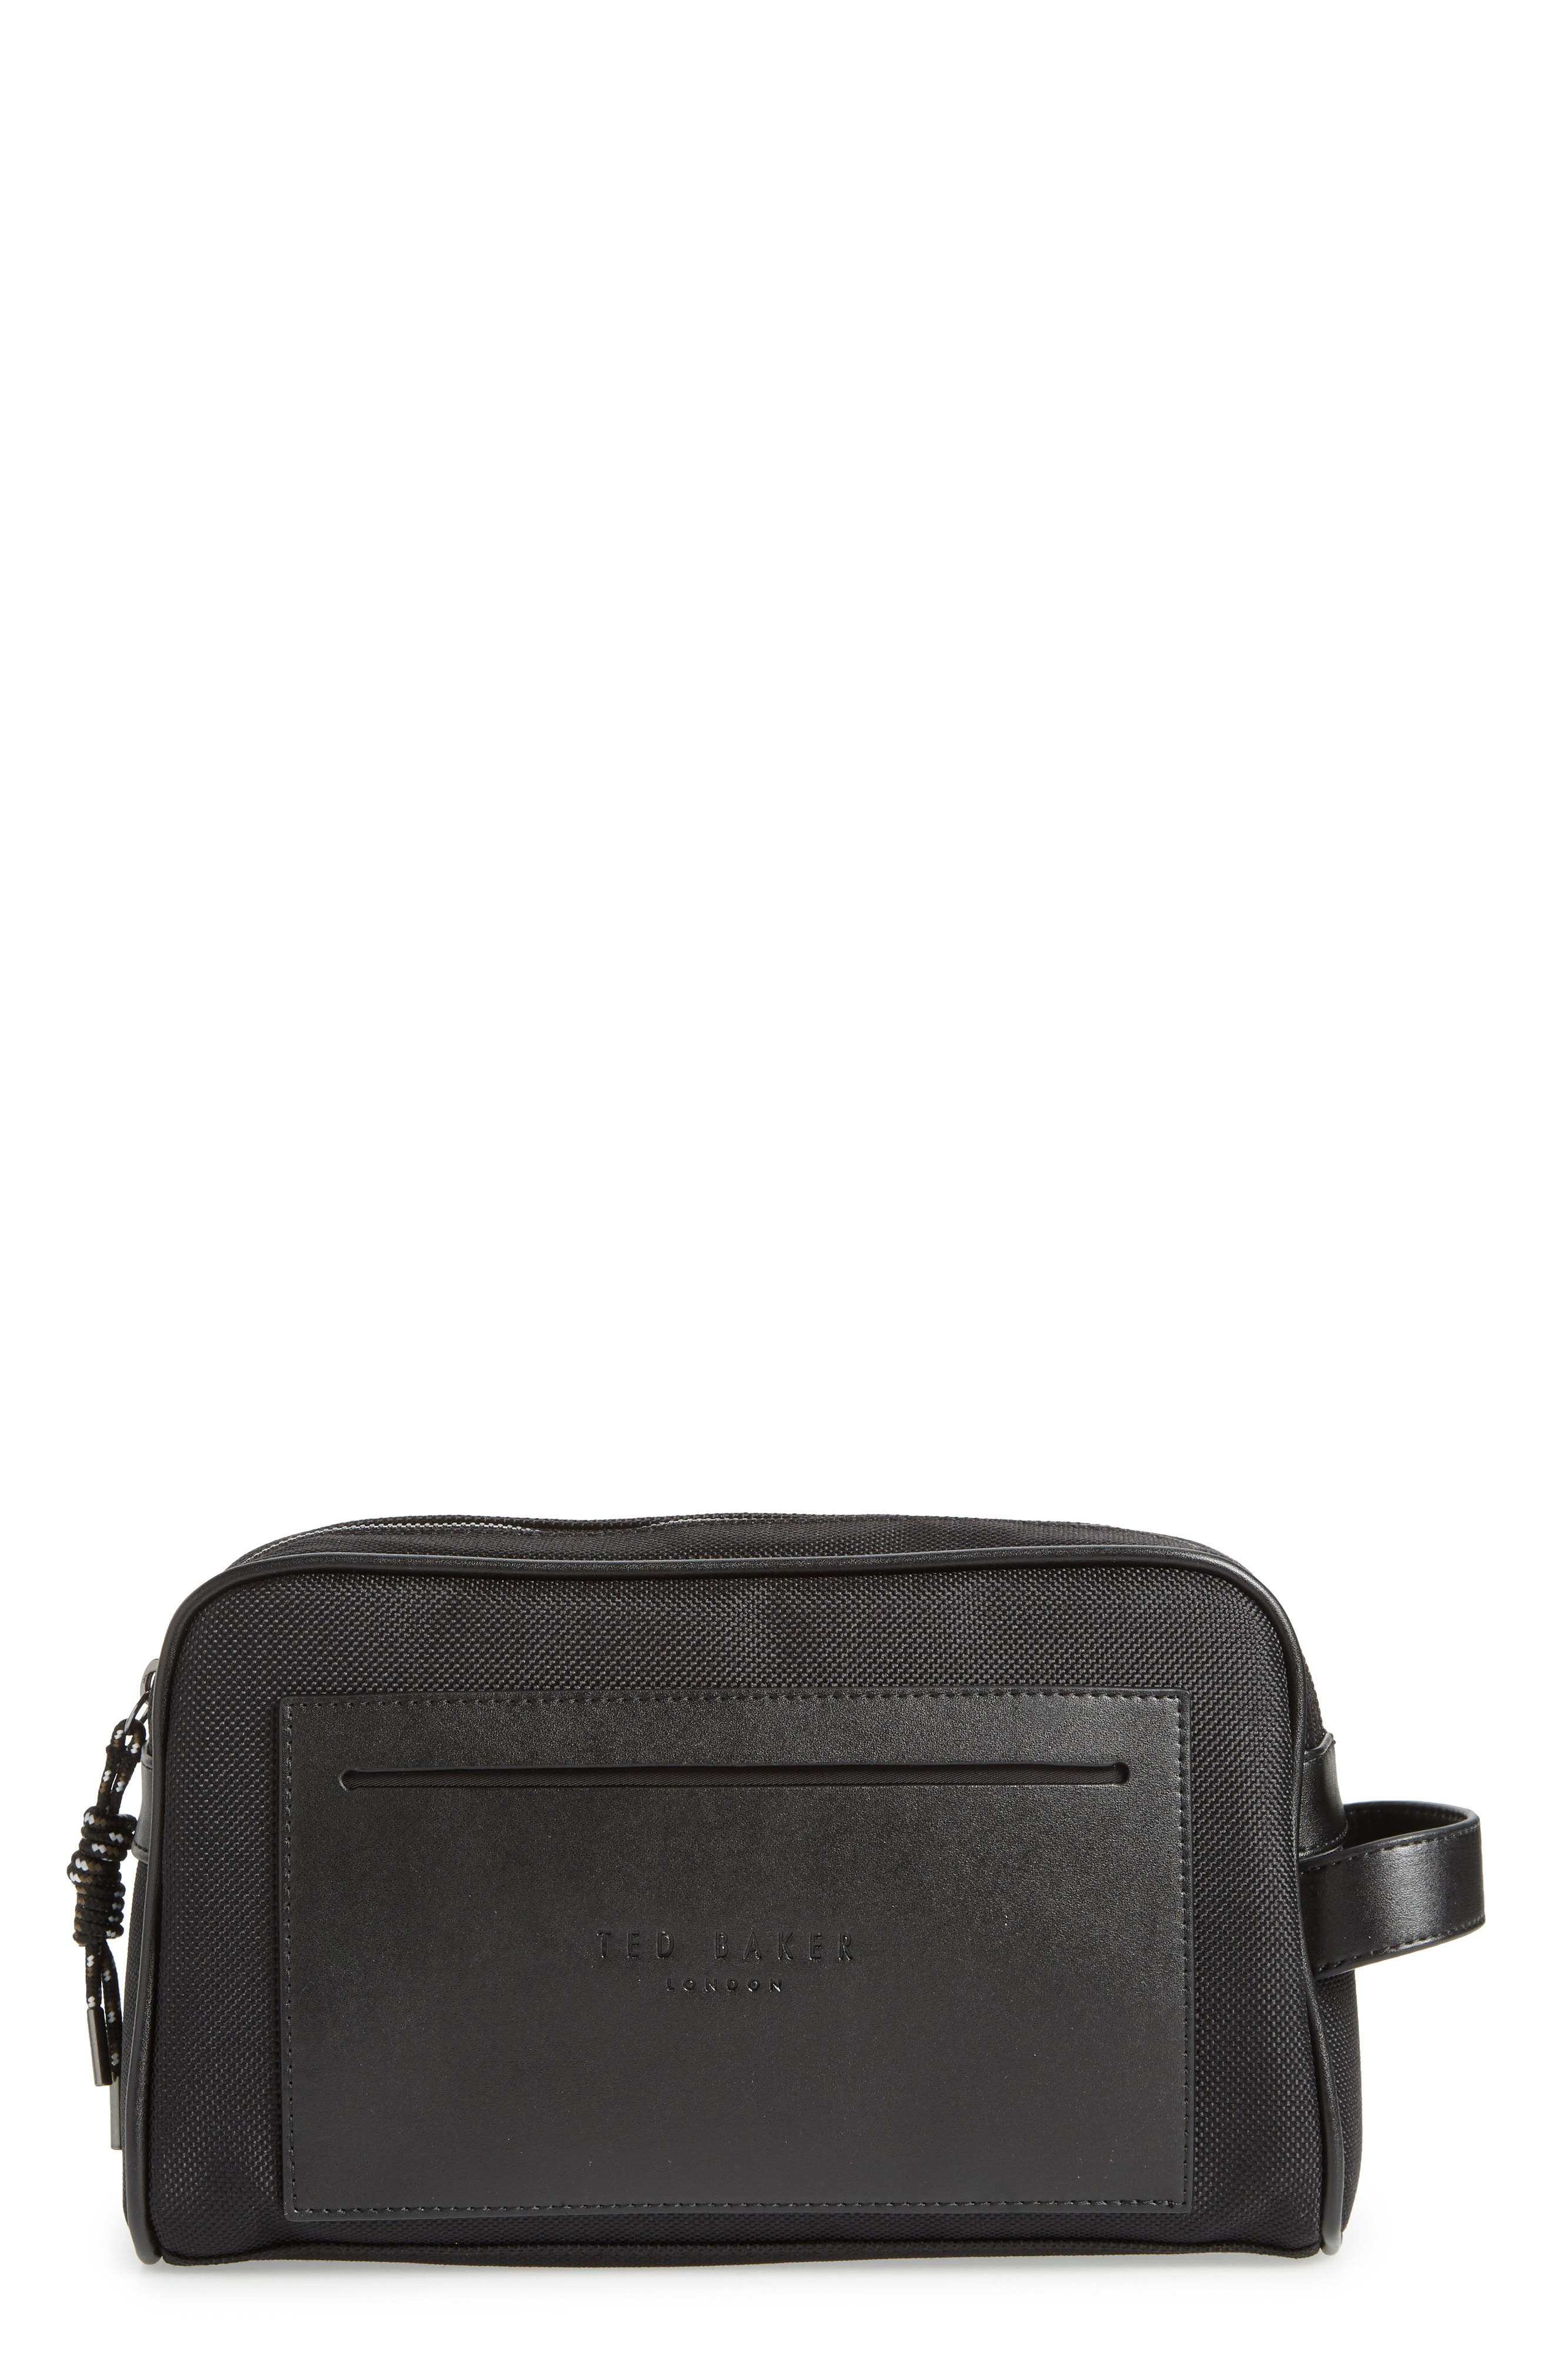 TED BAKER LONDON,                             Blends Dopp Kit,                             Main thumbnail 1, color,                             BLACK